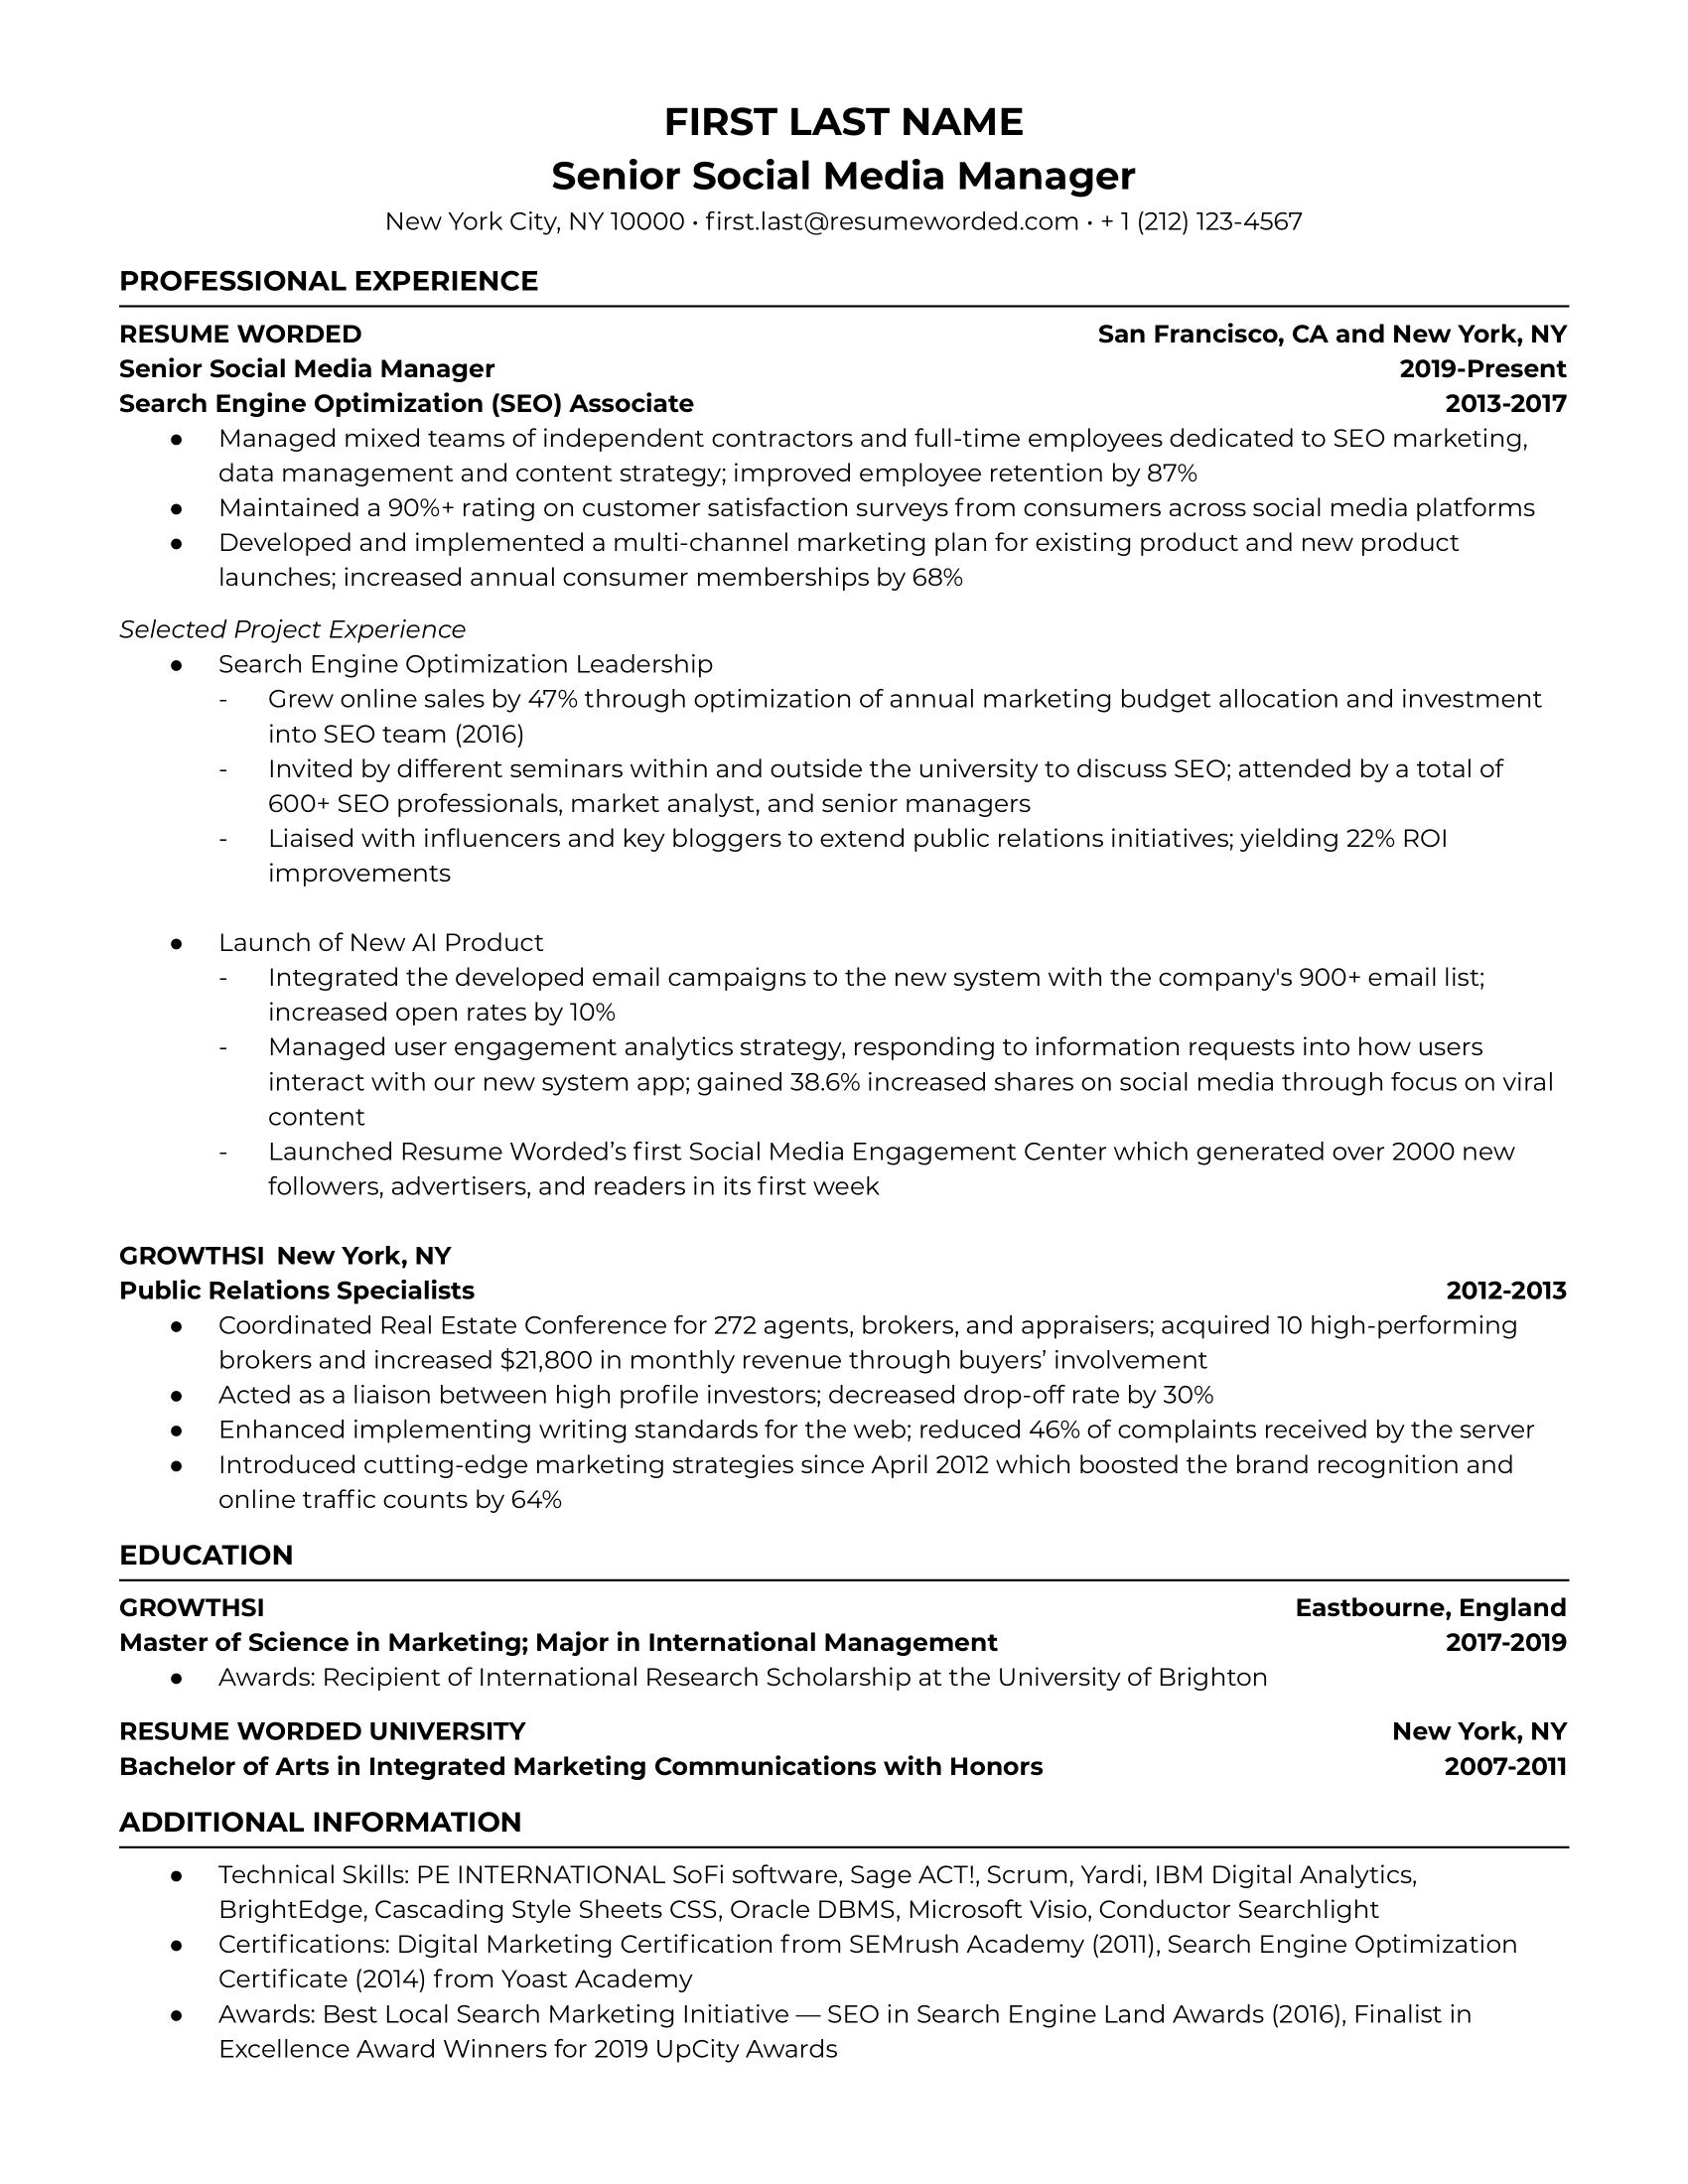 Social media manager resume example for a senior and more experienced role